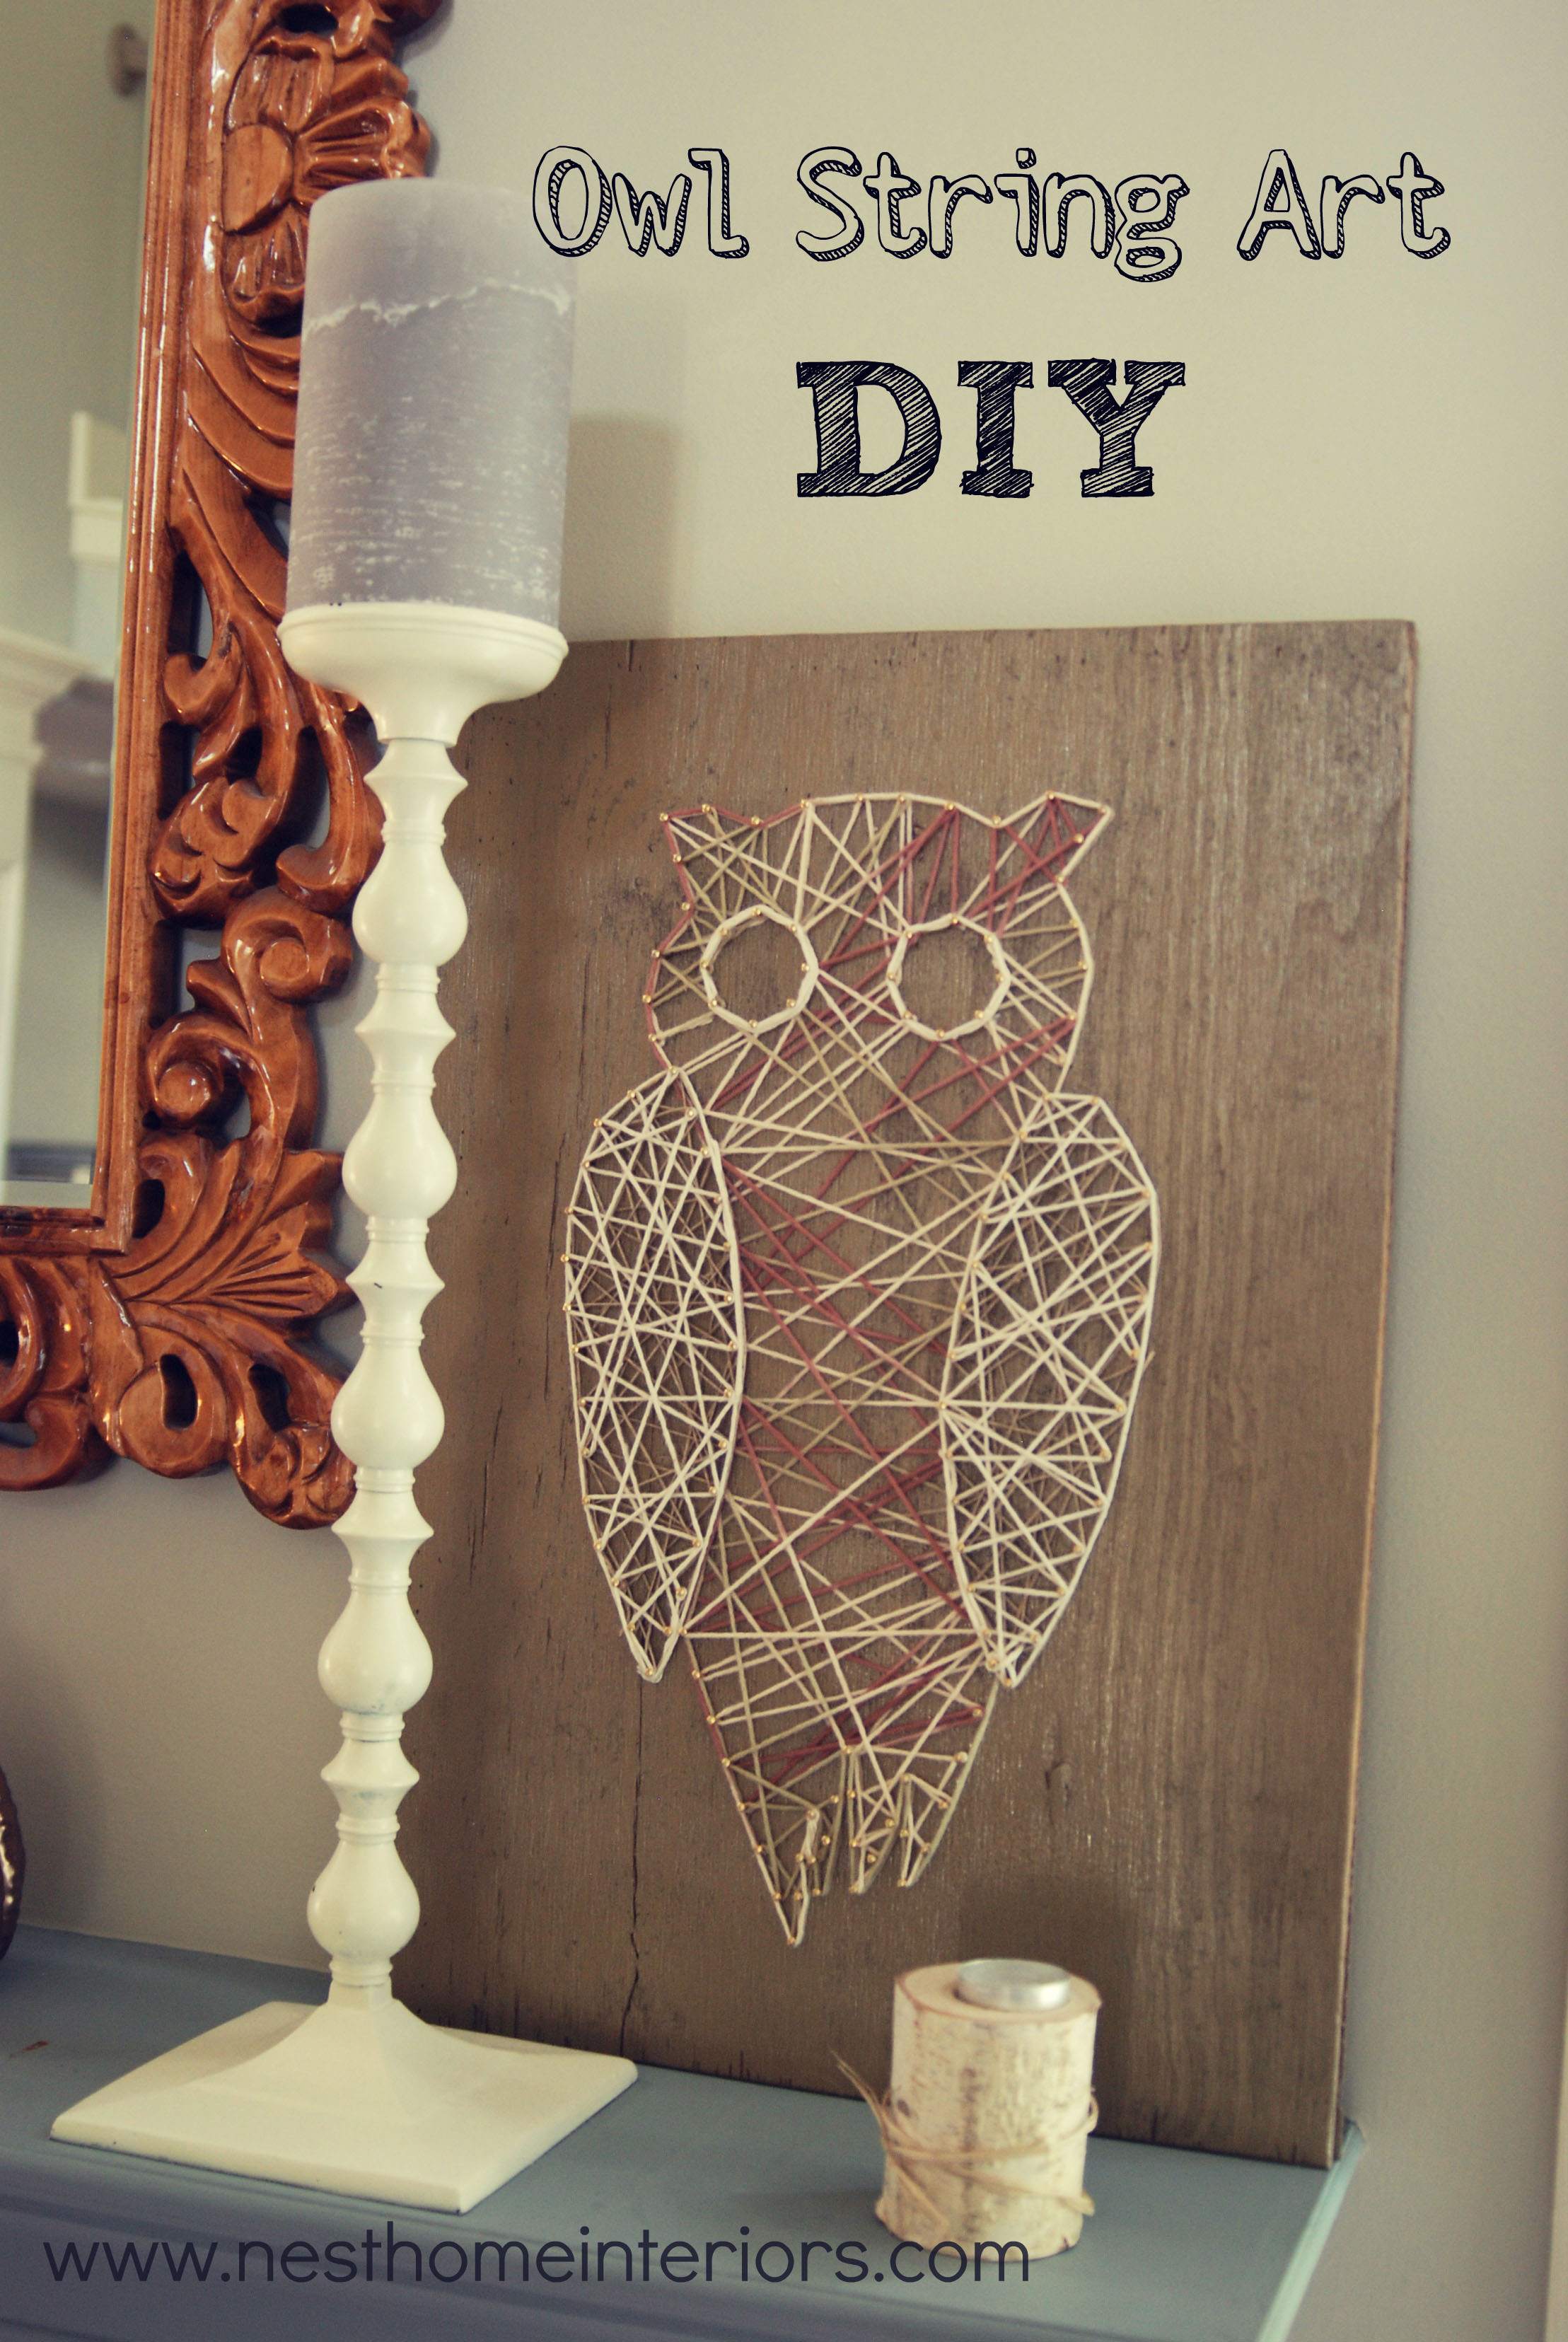 Owl String Art via Nest